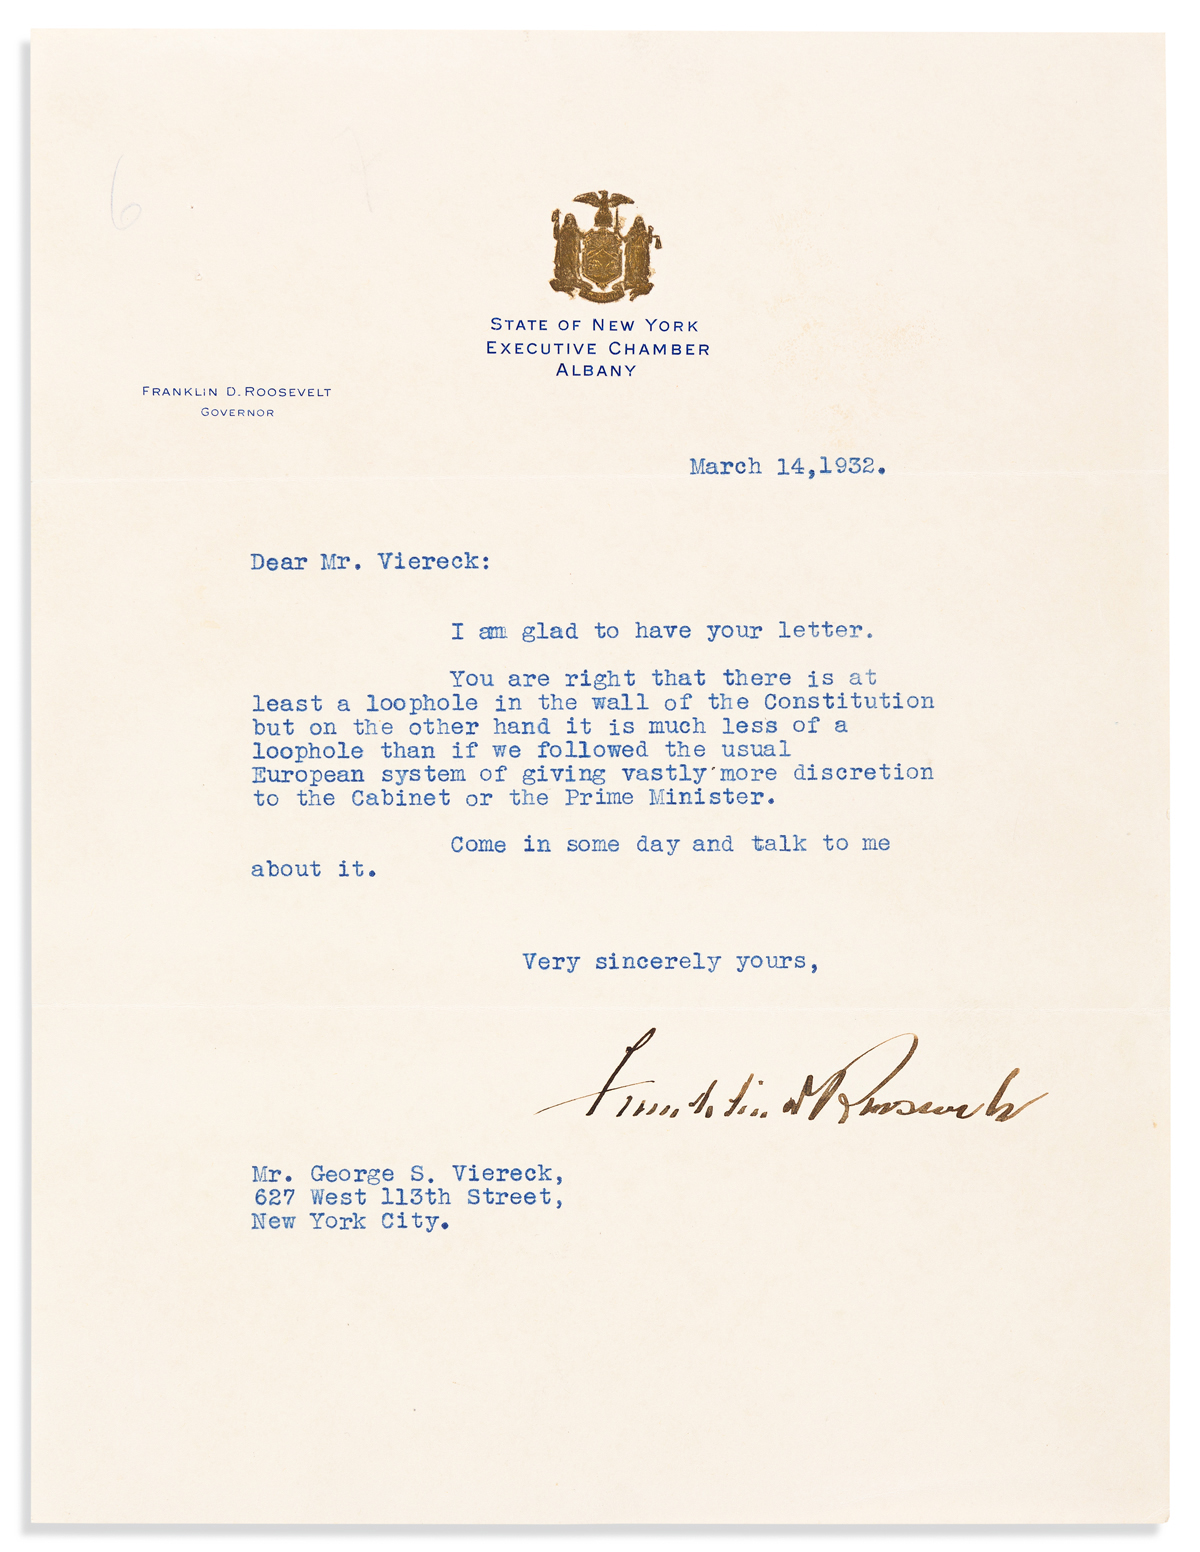 ROOSEVELT, FRANKLIN D. Typed Letter Signed, as Governor, to German-American poet and advocate of National Socialism George Sylvester Vi